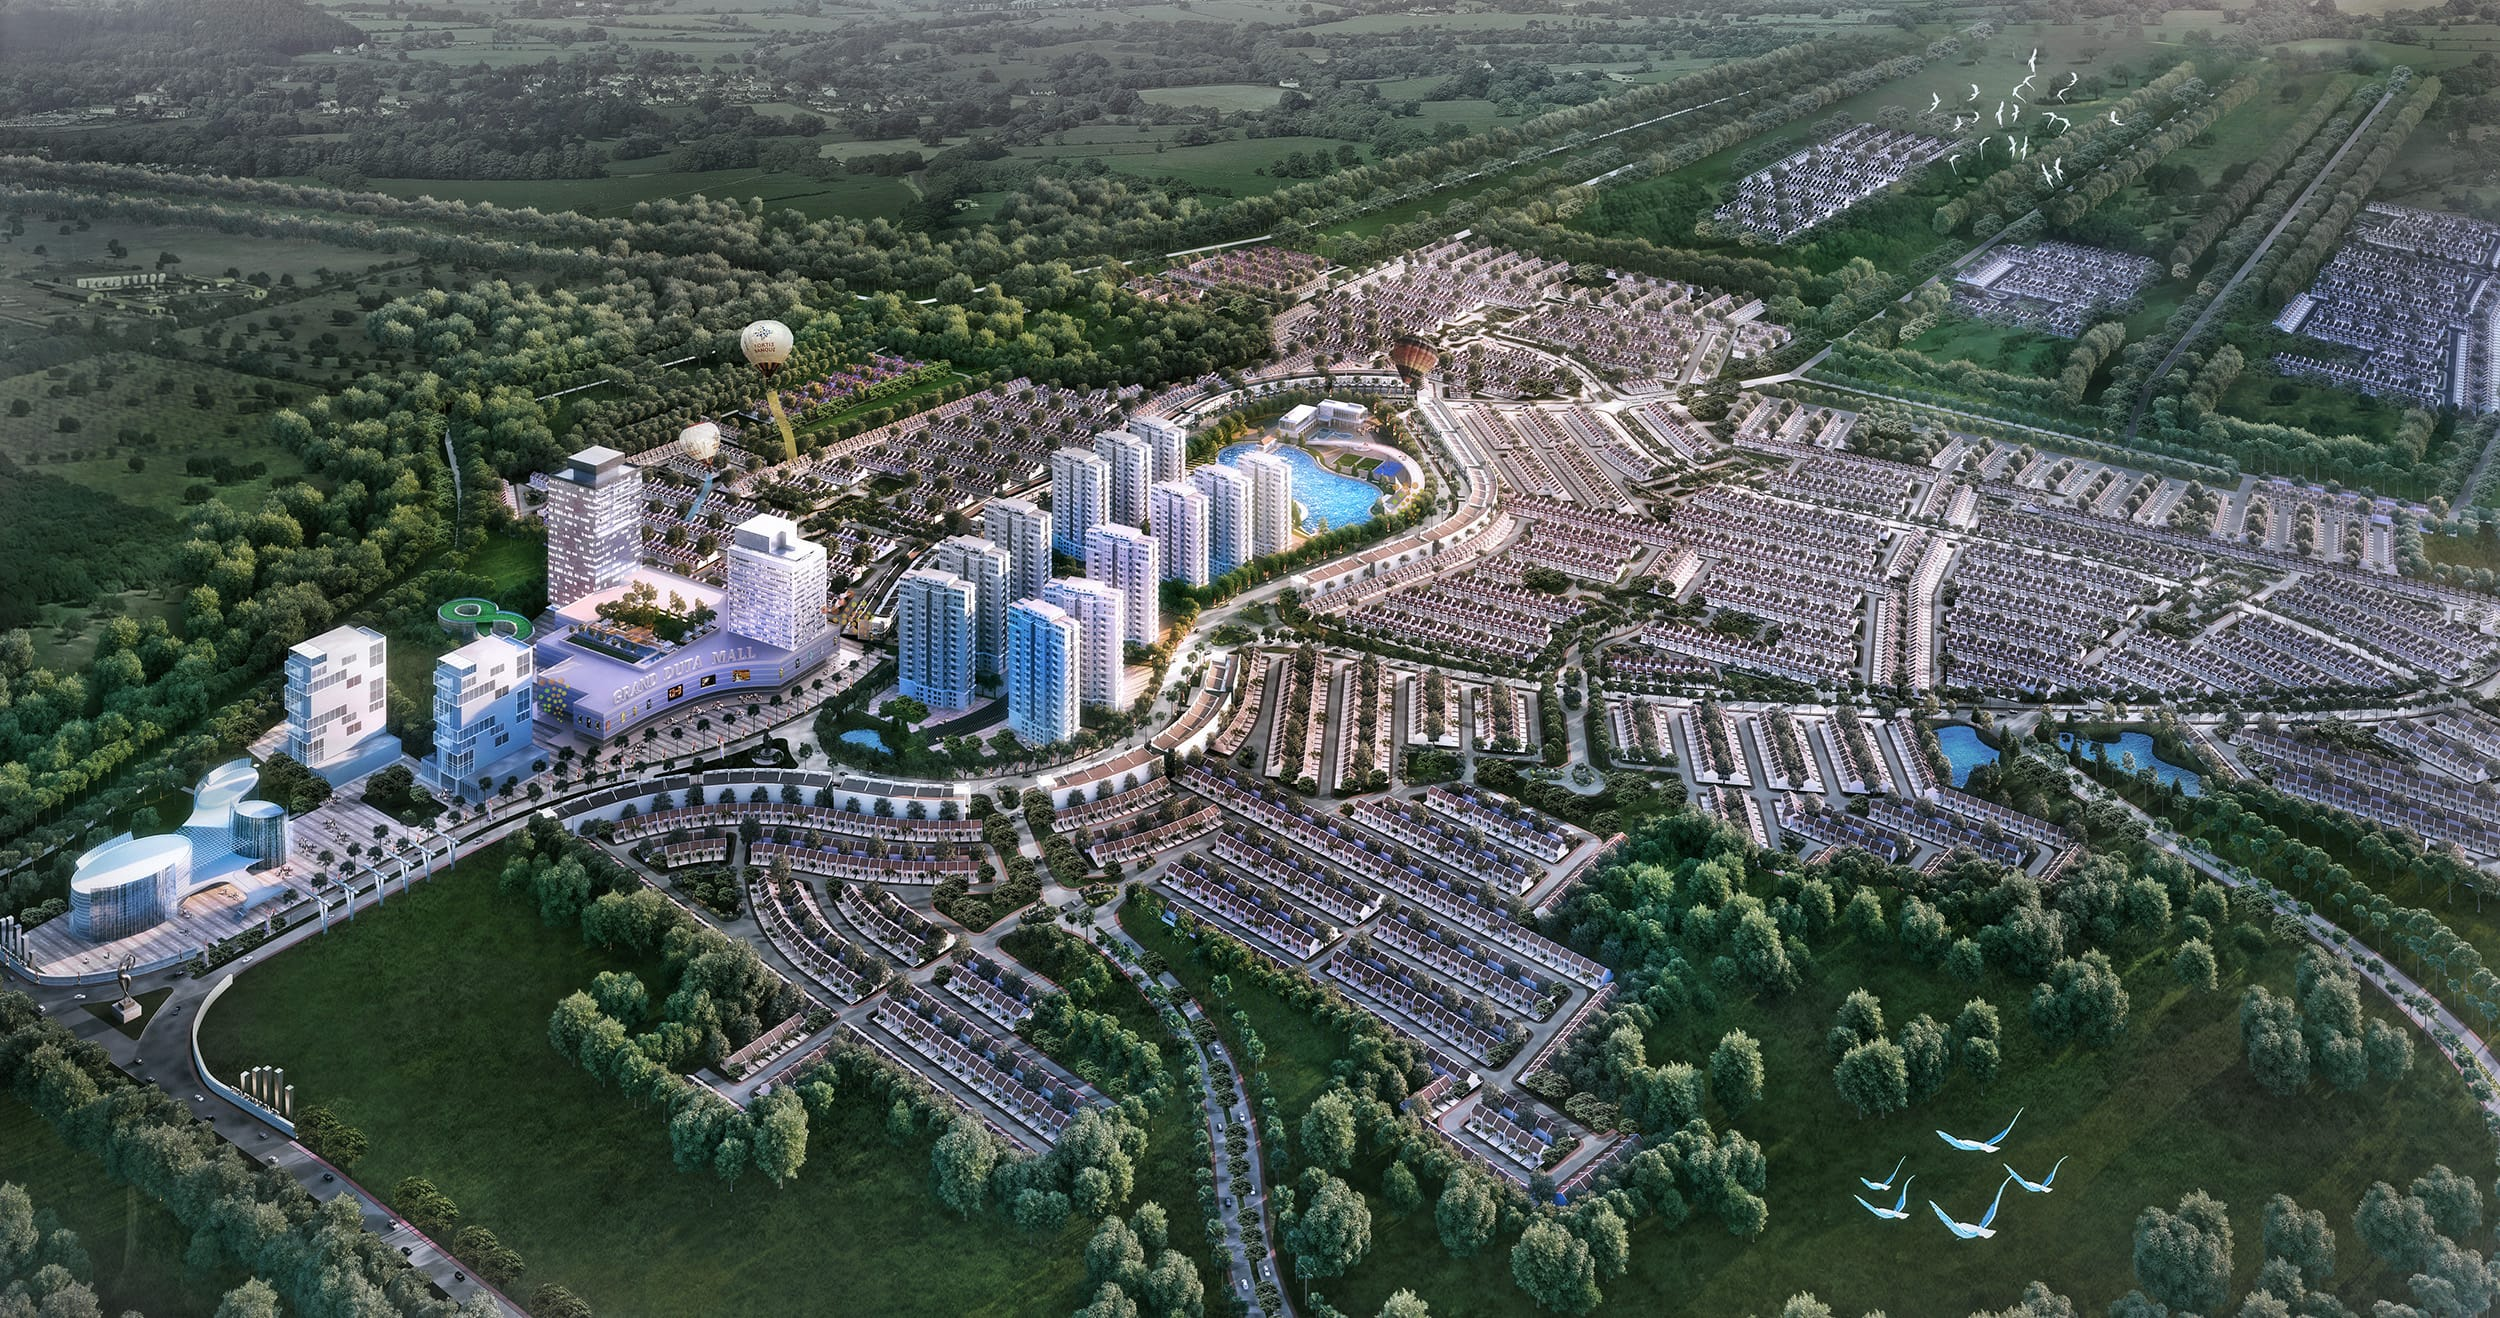 Grand Duta City 200 Hectare of Lifestyle City